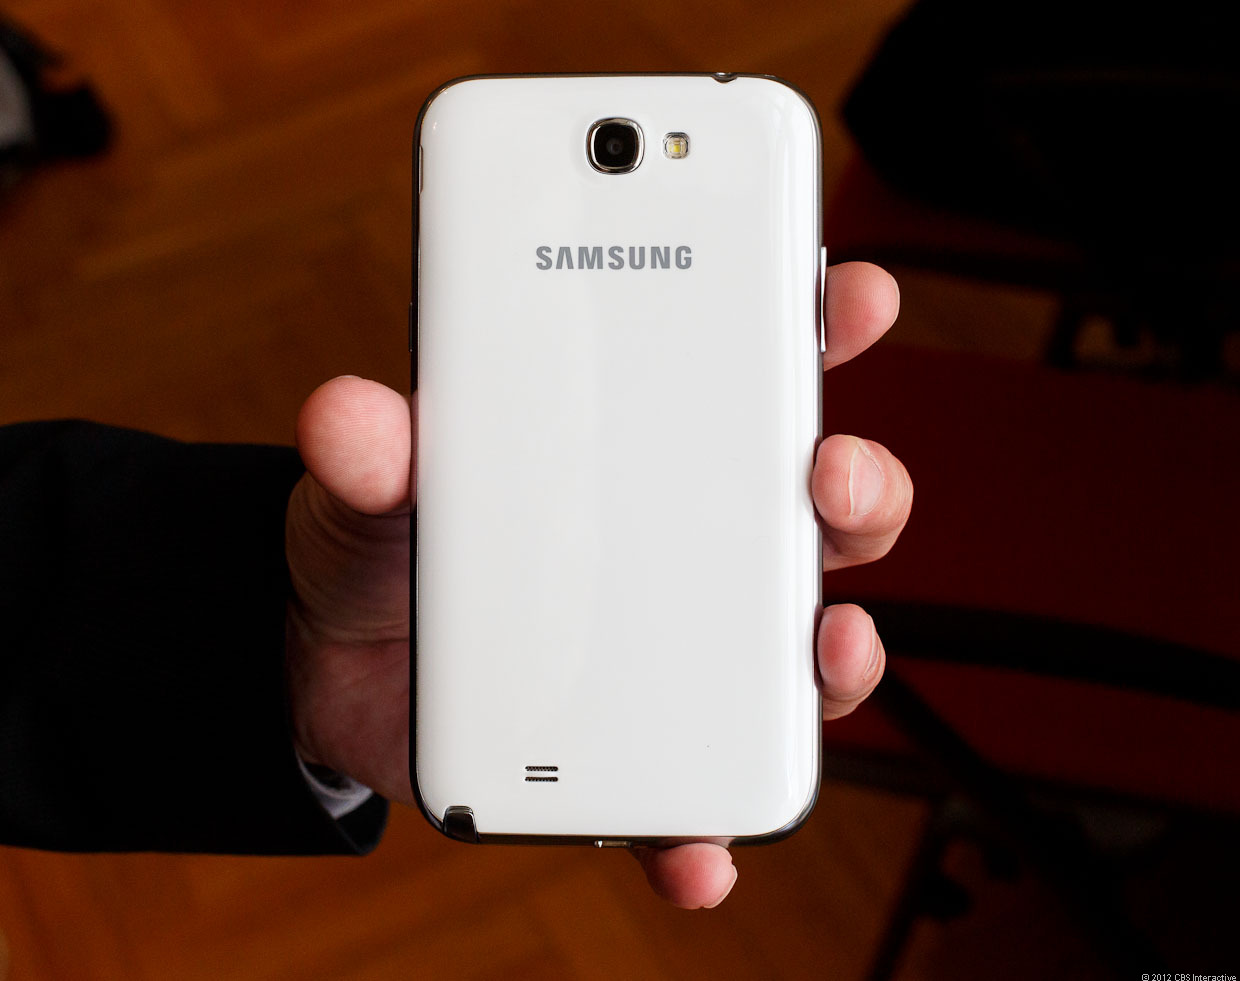 The back of the Galaxy Note 2 shows its 8-megapixel camera, LED flash, and speaker.